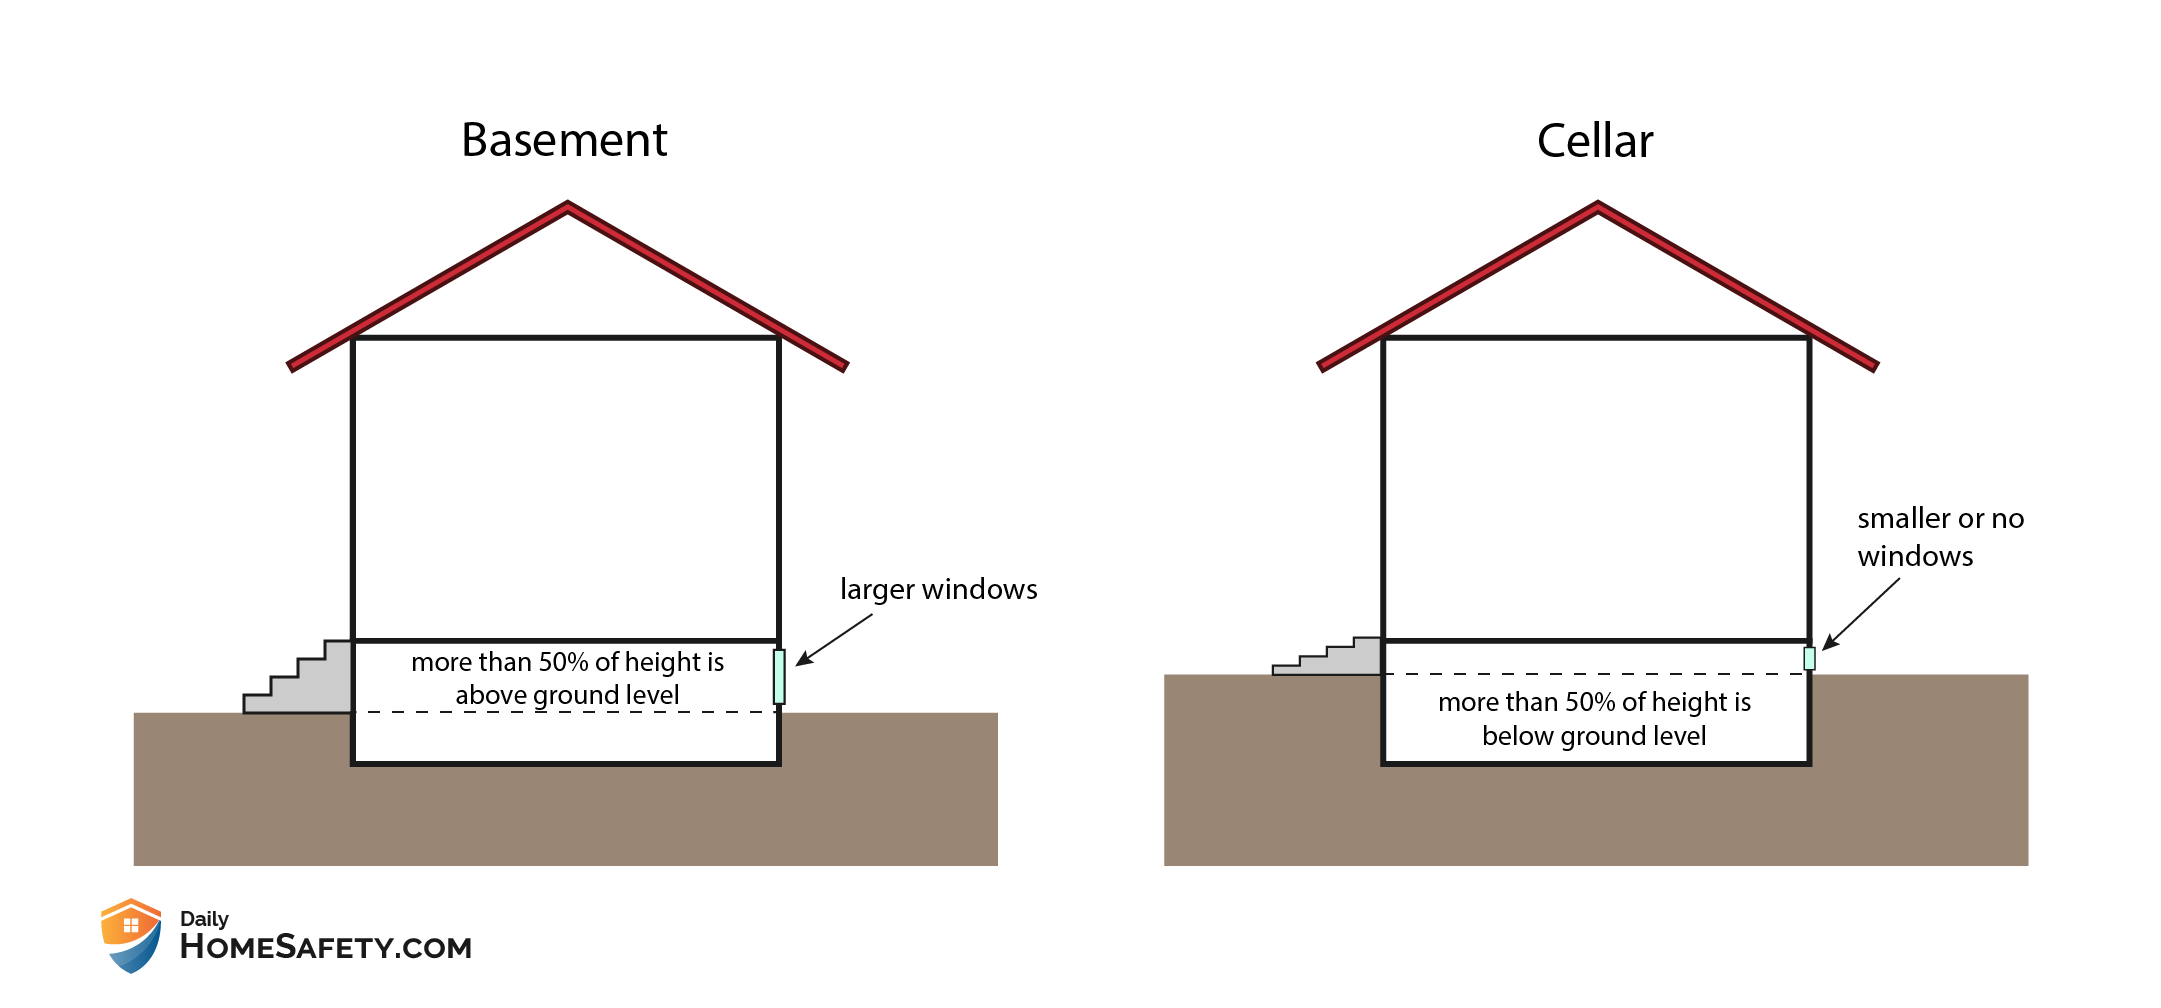 Differences between cellar and basement